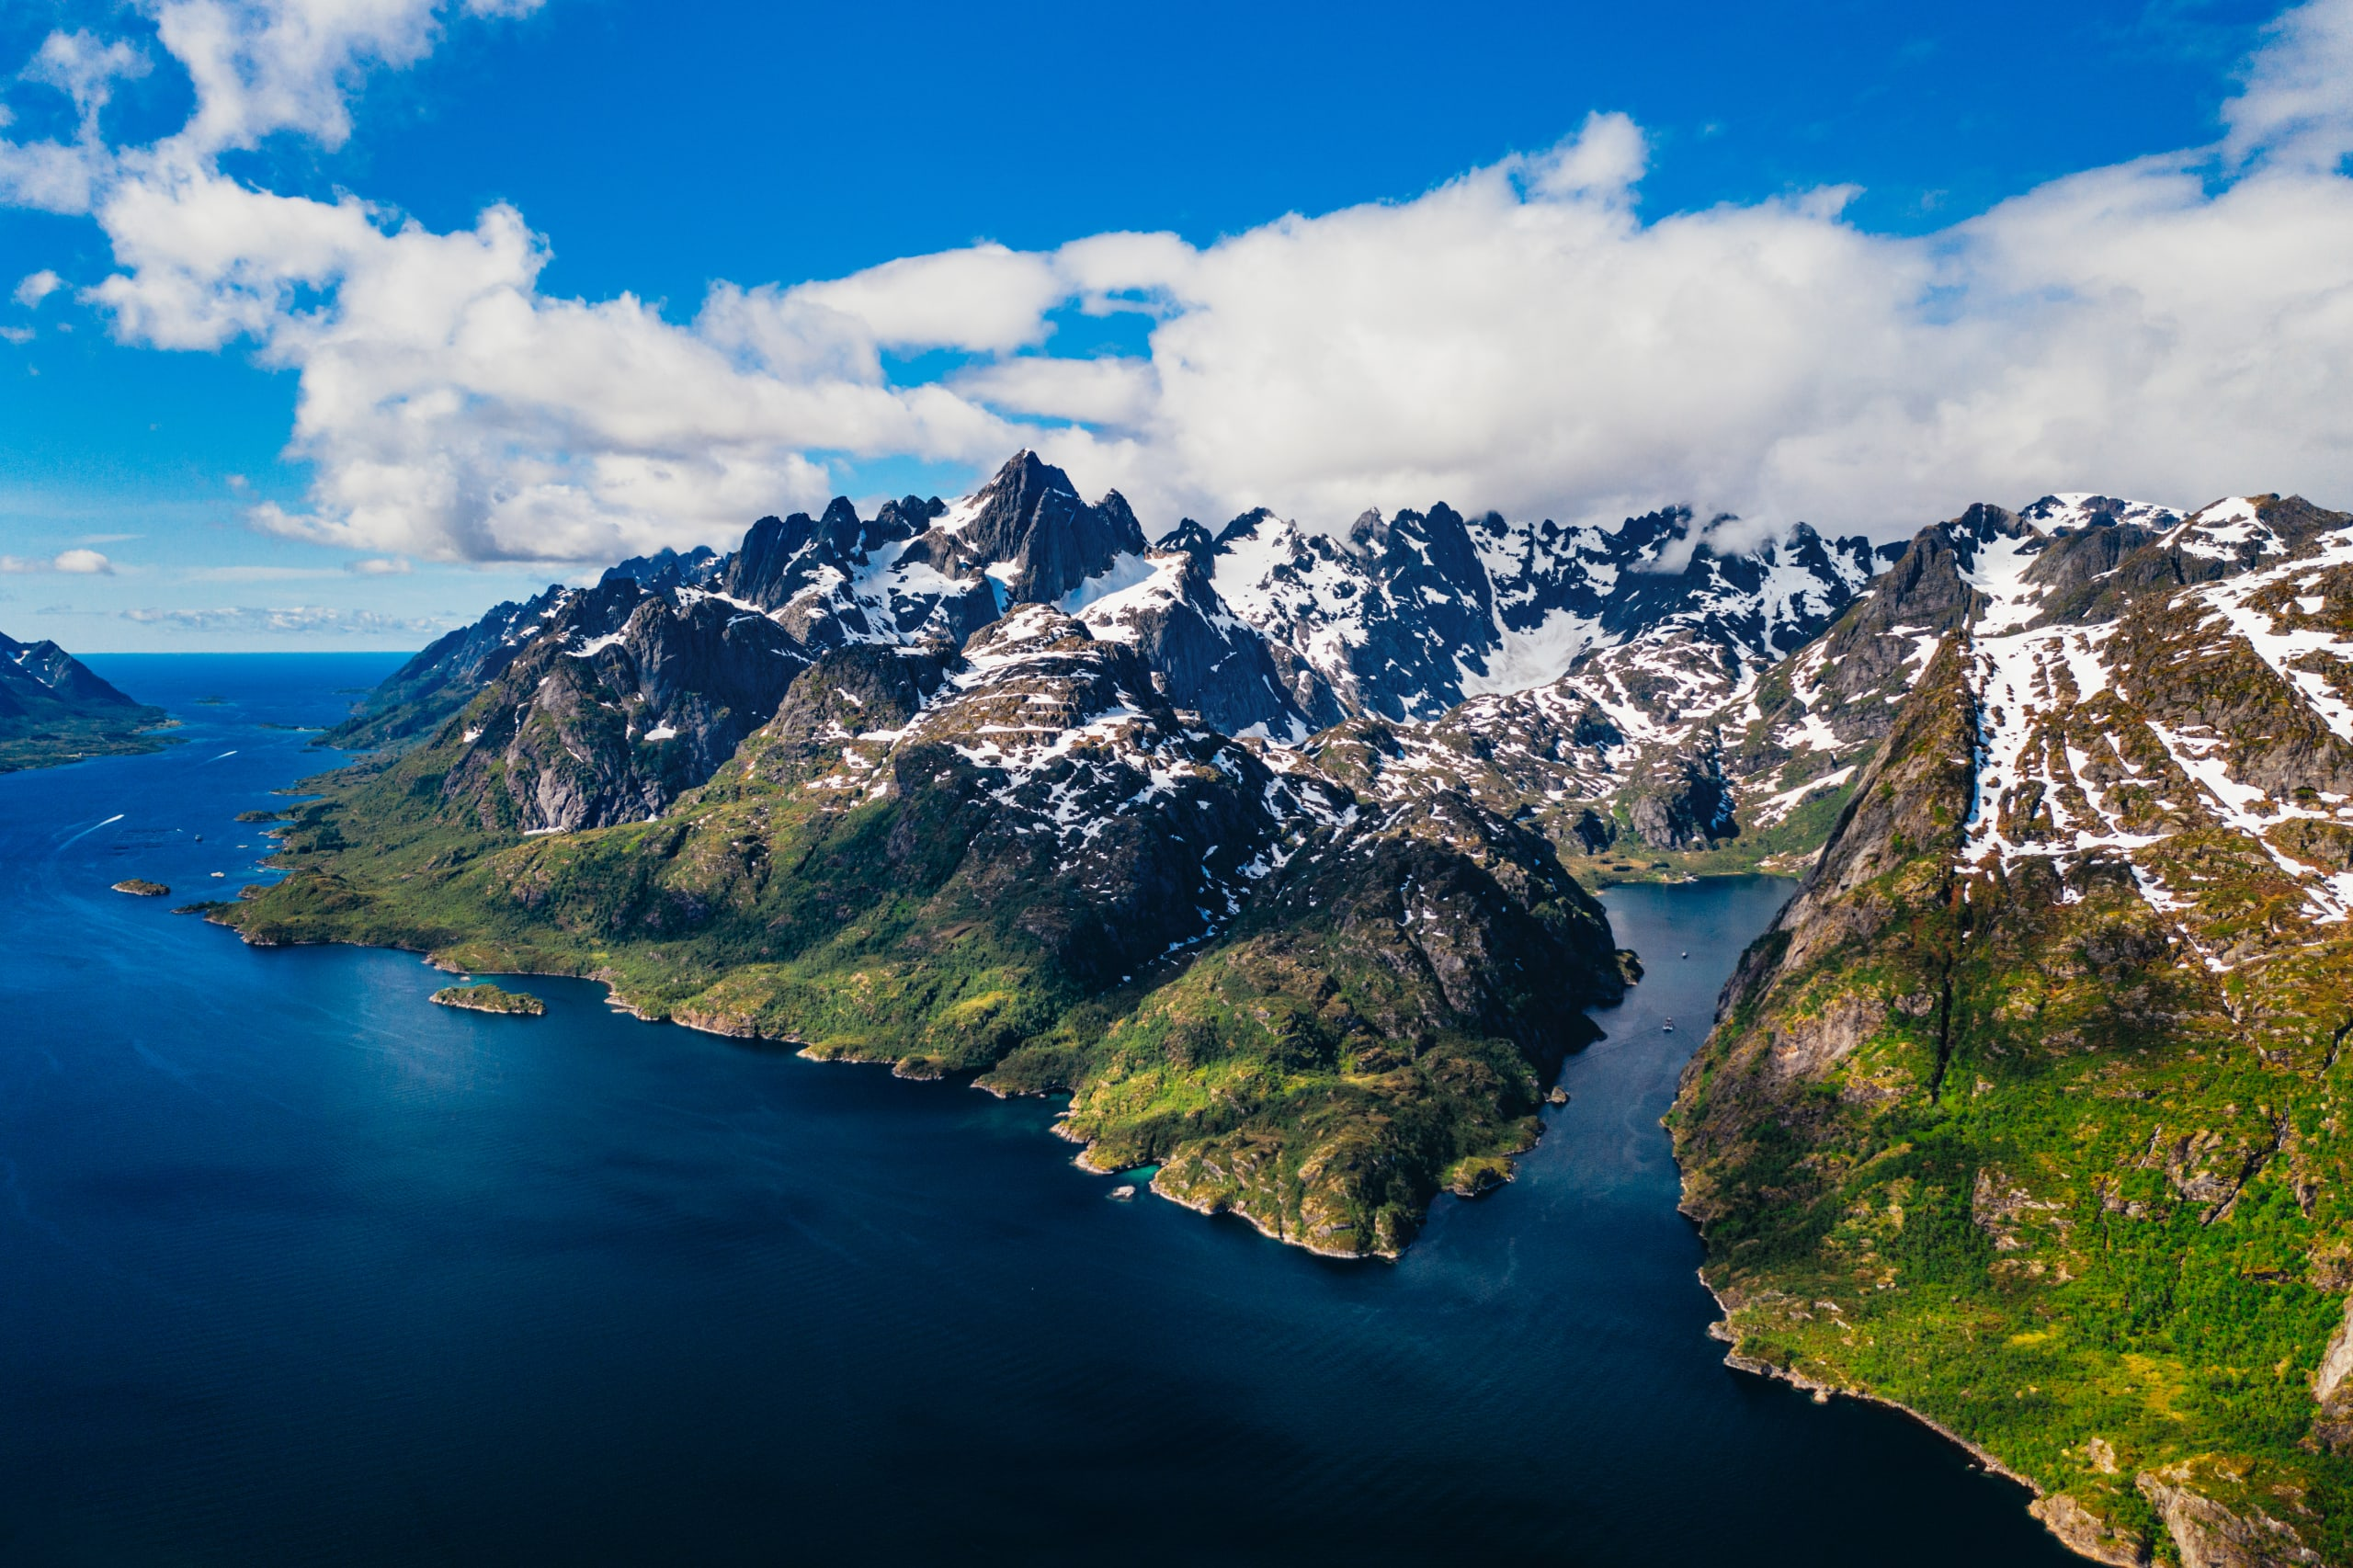 Trollfjord mountains rising from the sea and rocky peak